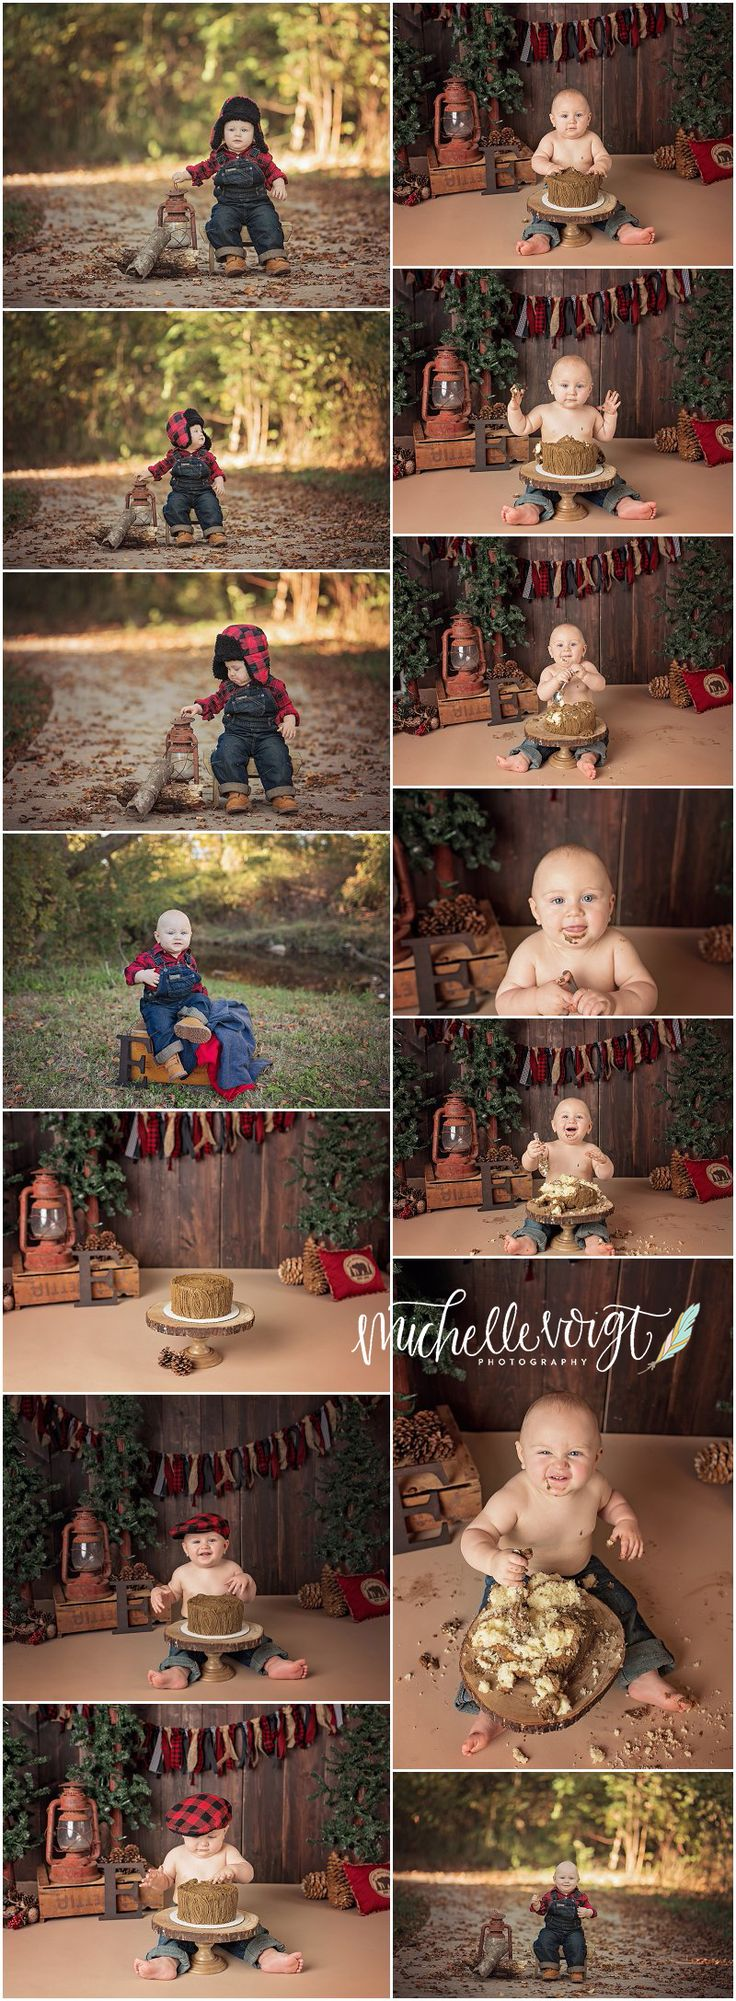 Michelle Voigt Photography  - Cake Smash Bryan/ College Station Photographer  Cake Smash Themes Lumber Jack  #mvoigtphoto #cakesmash